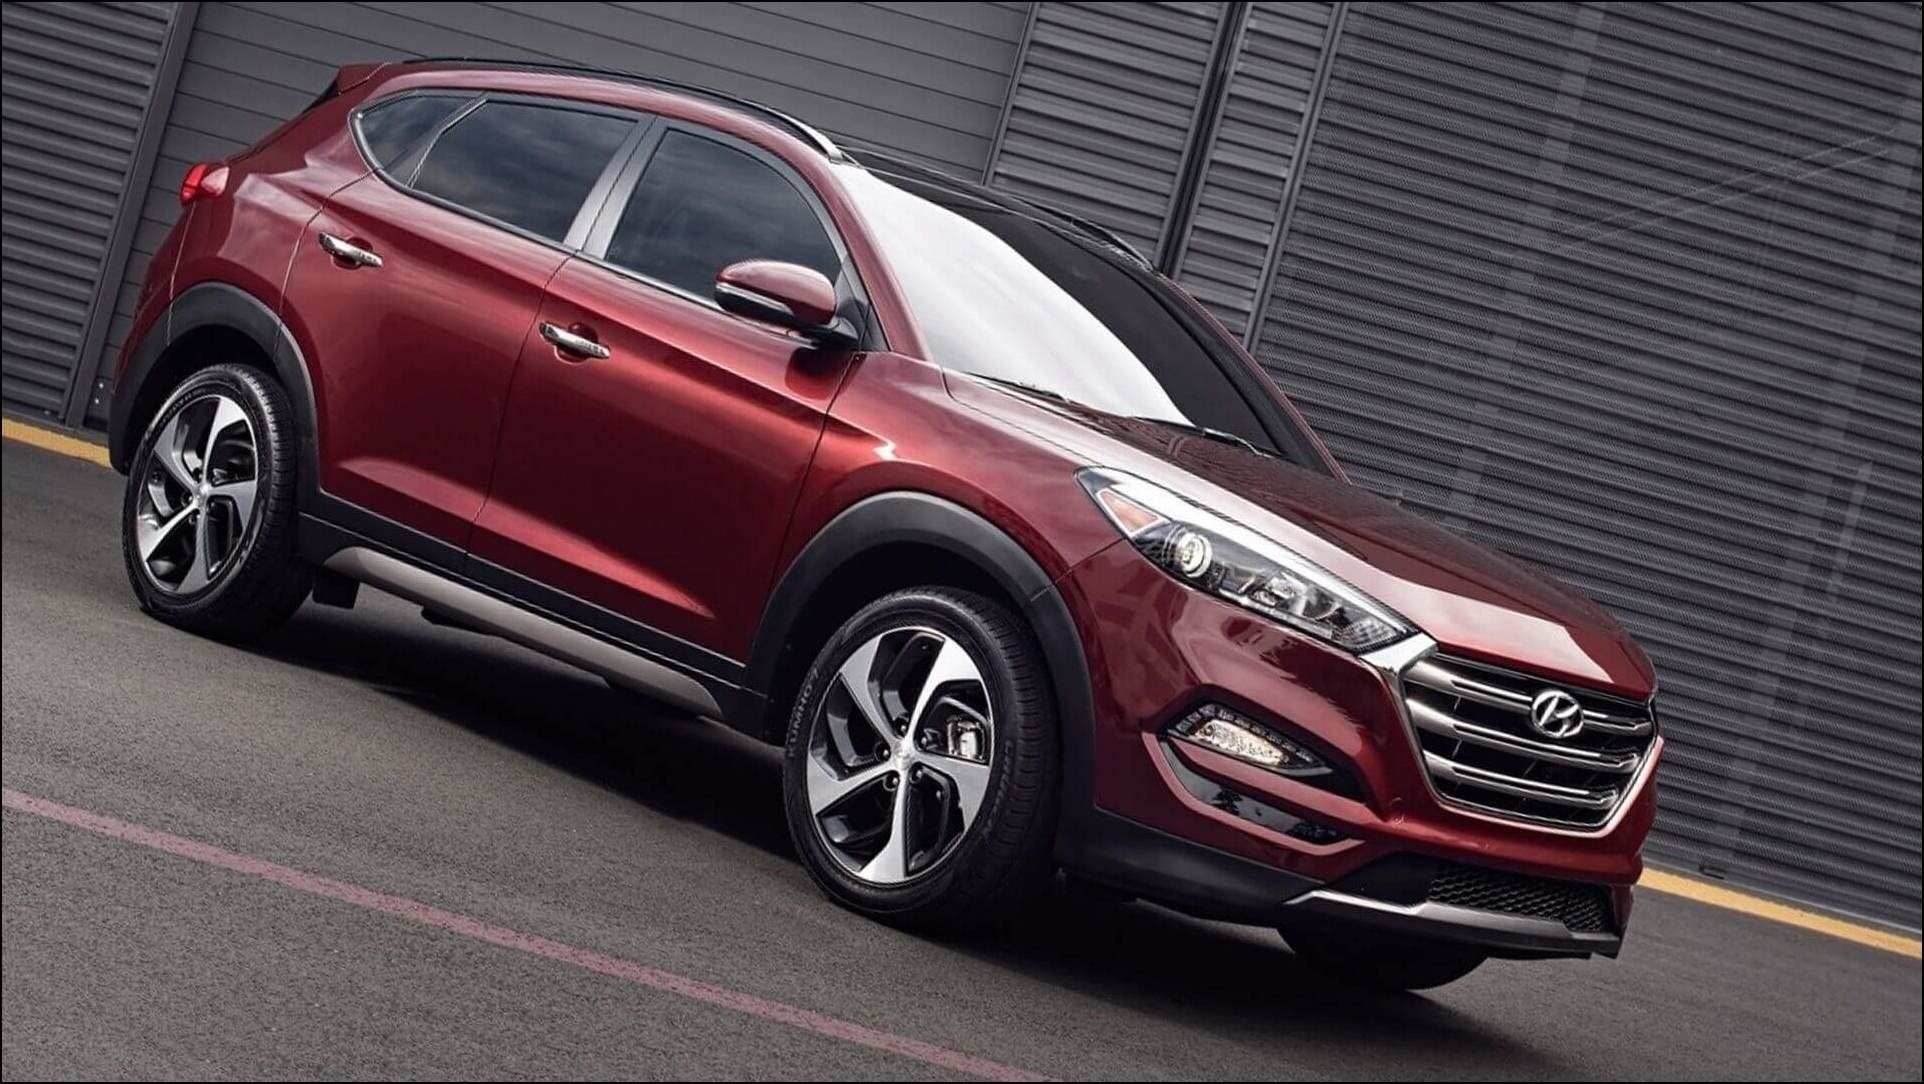 39 All New When Will The 2020 Hyundai Tucson Be Released Review And Release Date